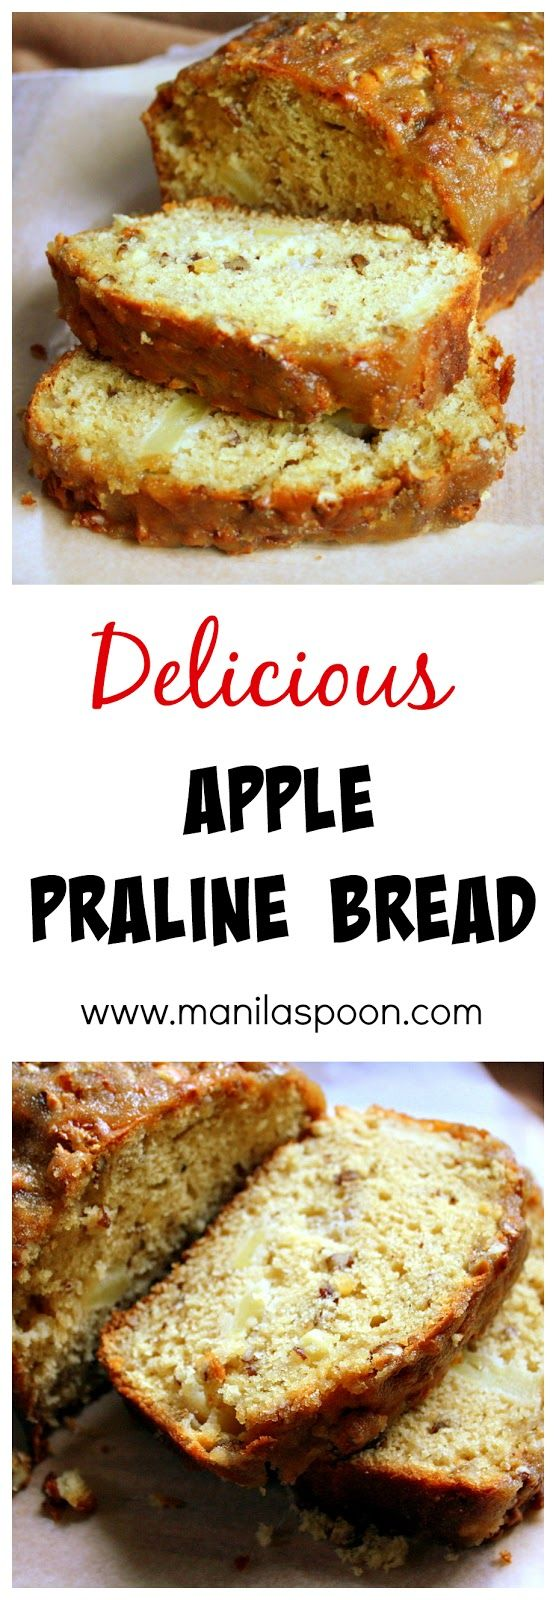 Apple Praline Bread - No Oil or Butter is used in the batter  yet this bread is so moist and delicious!!! The crunchy praline topping brings this over the top! You must make this!